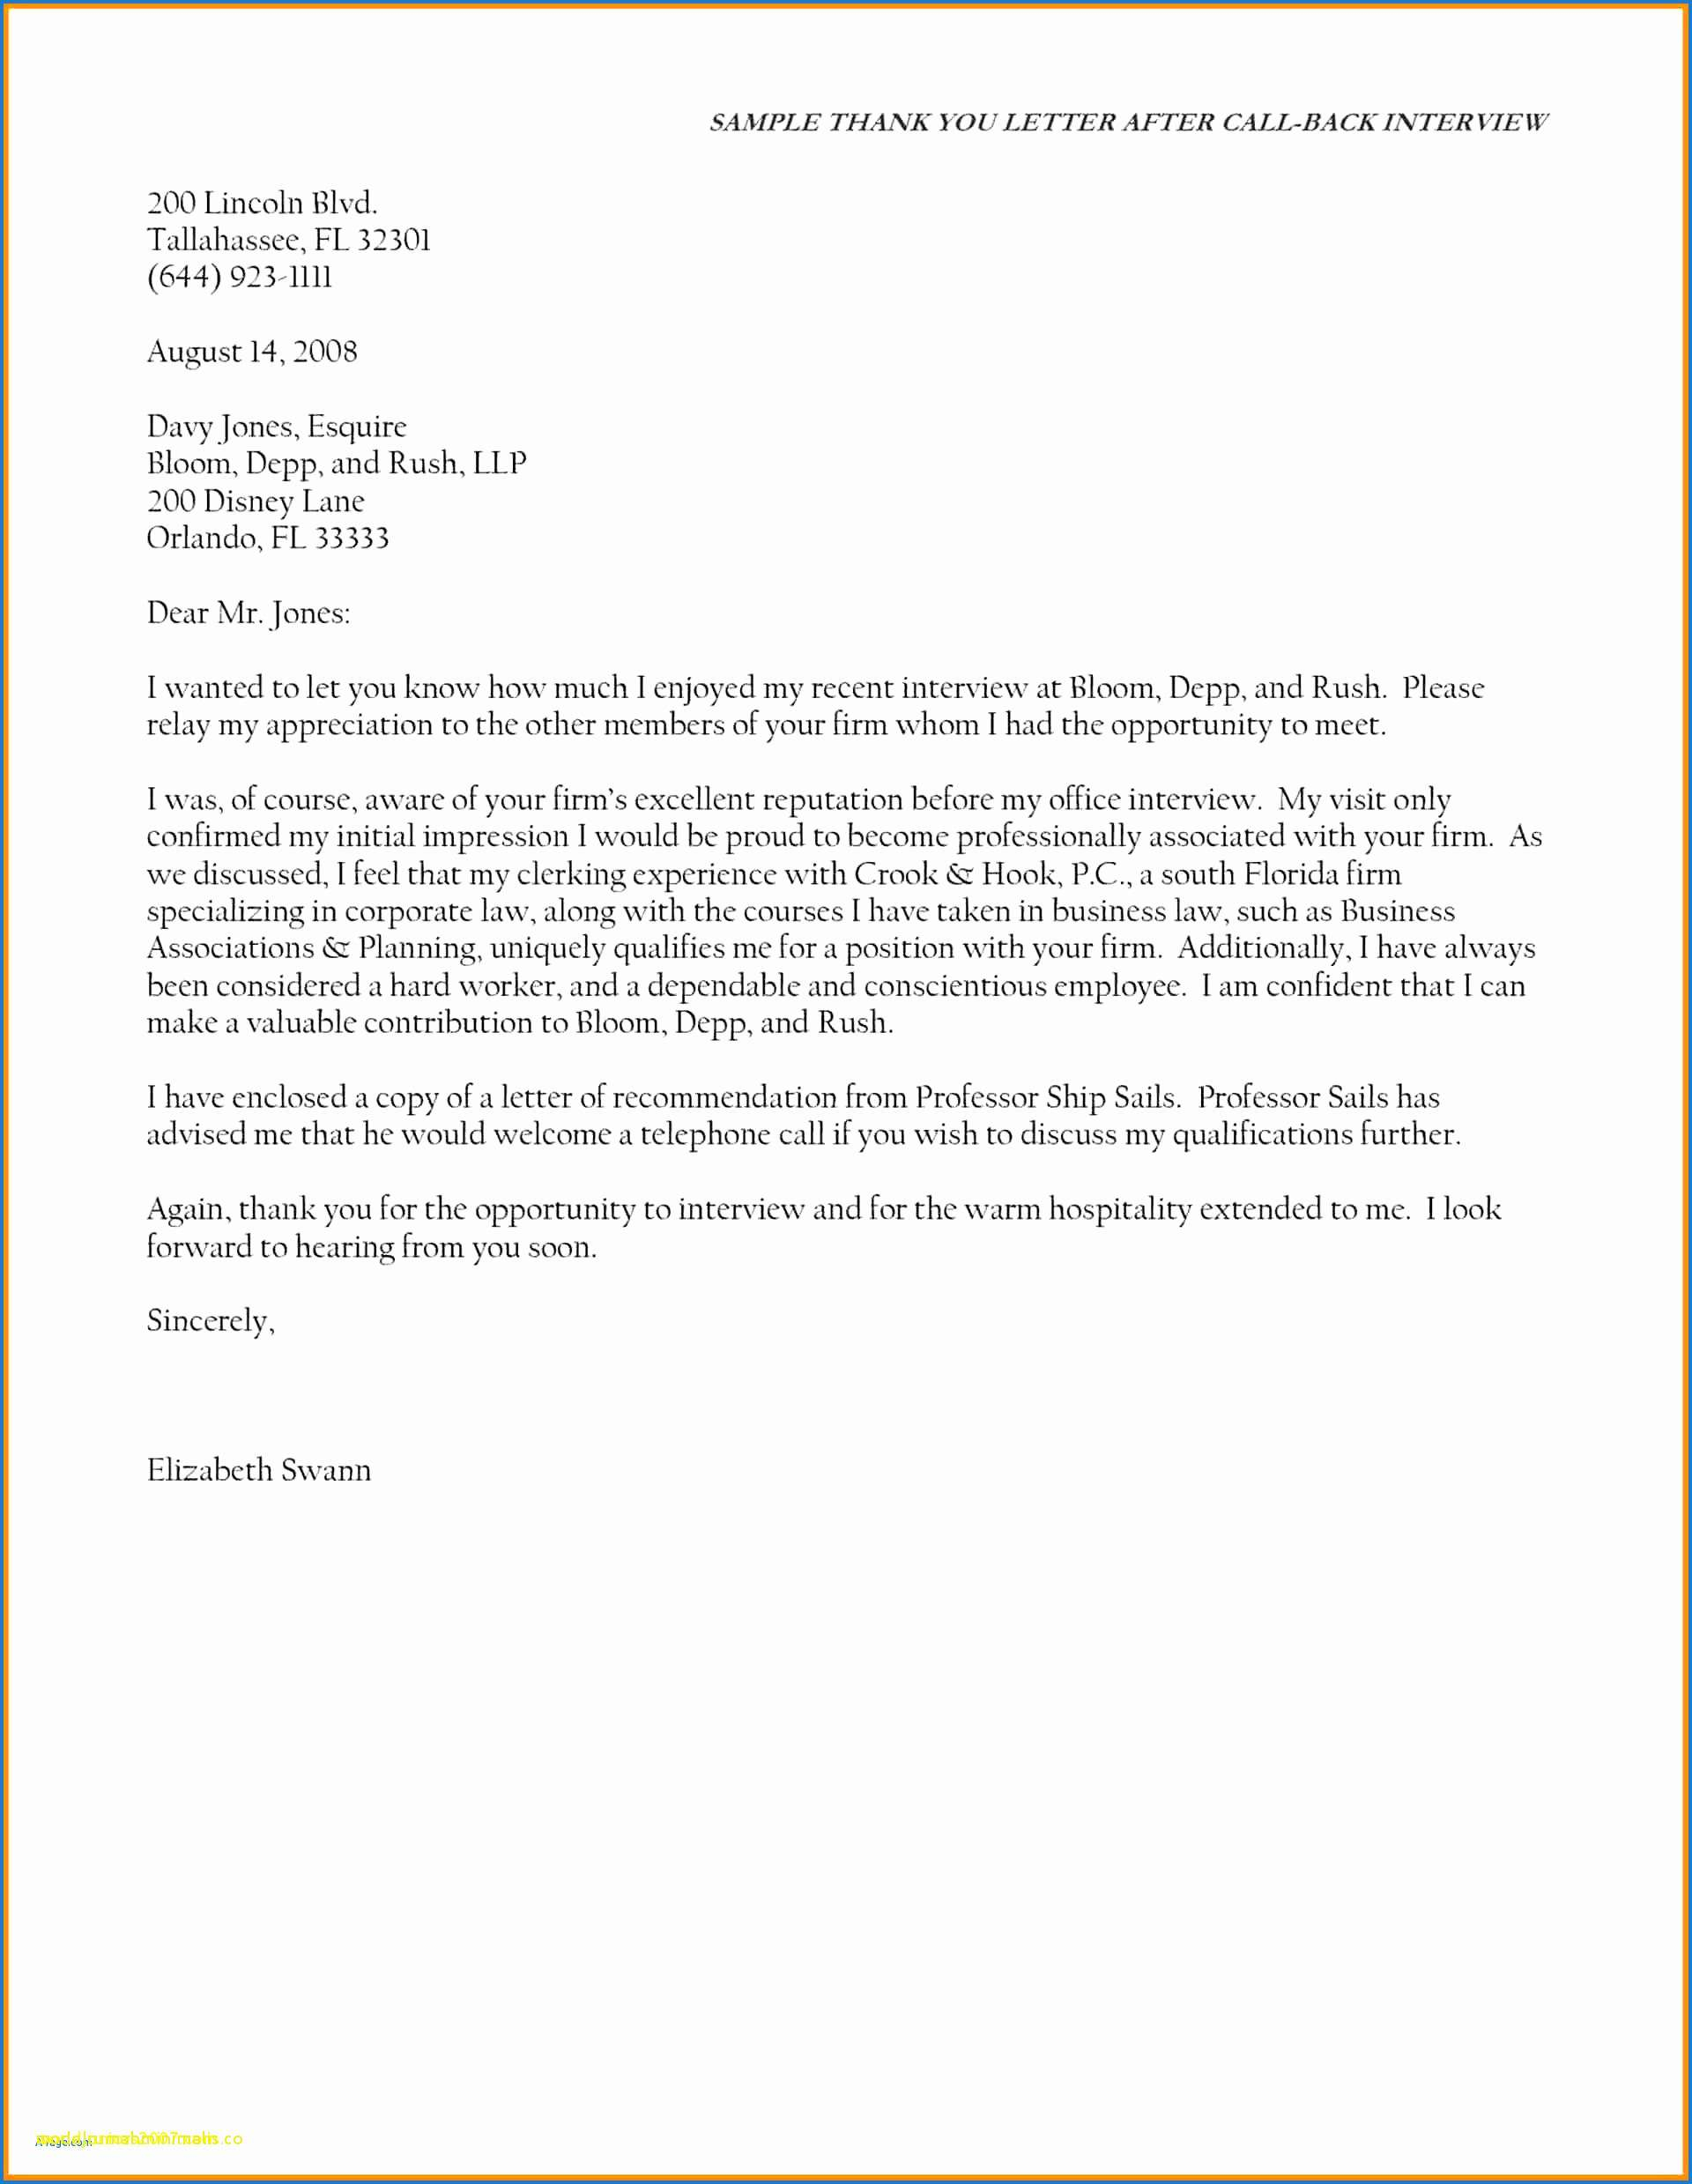 Welcome Letter Email Template - Best Free HTML Email Templates